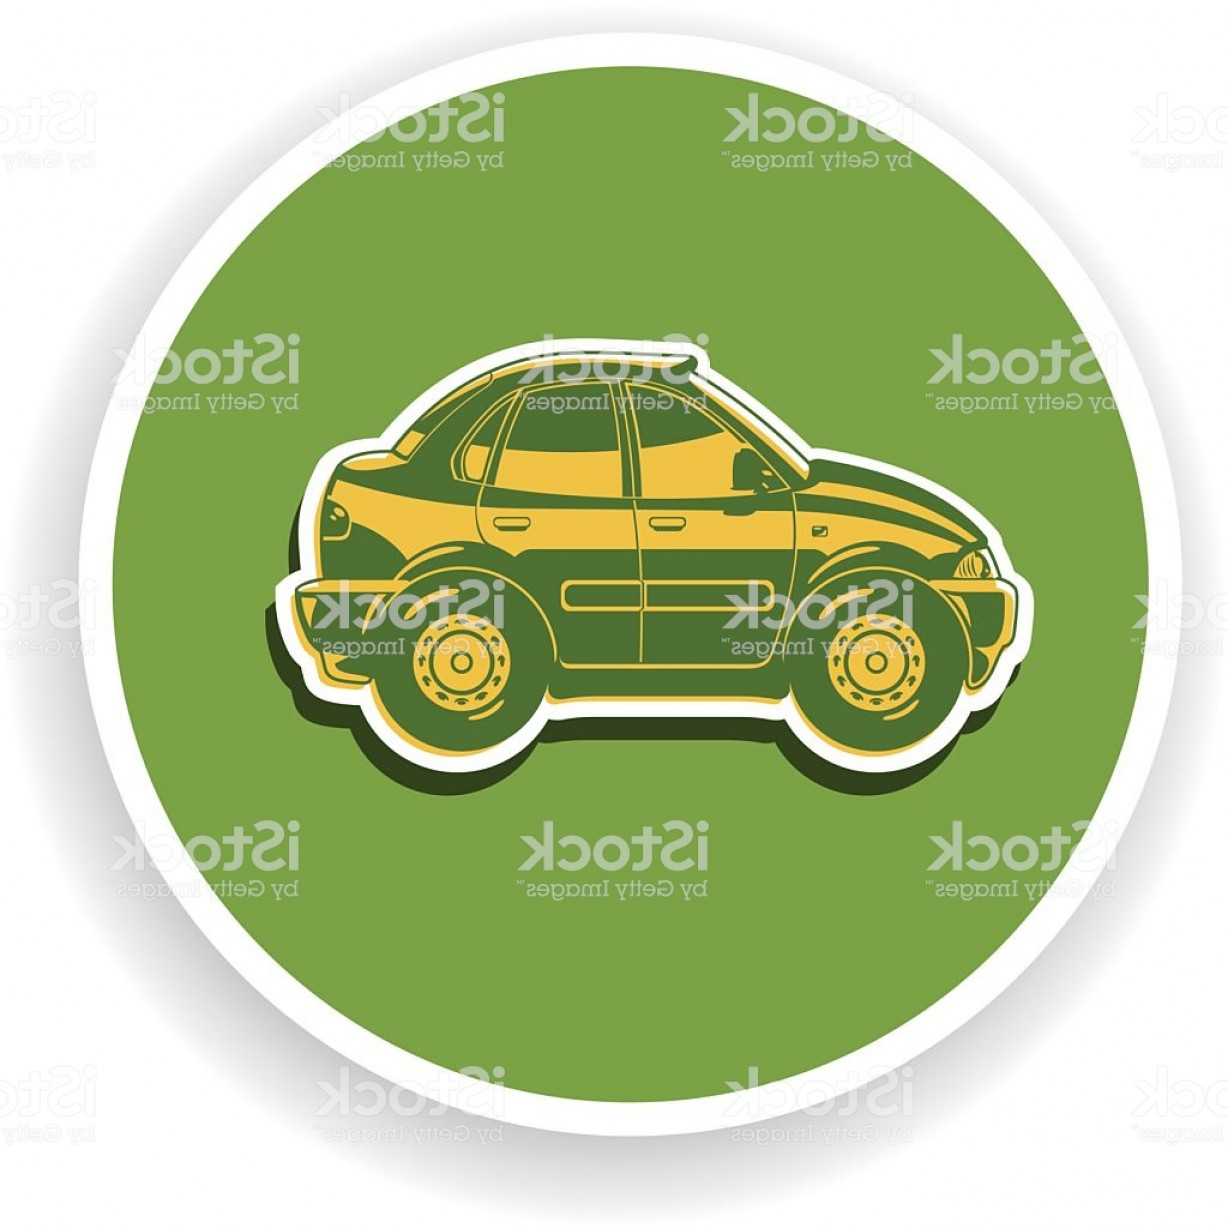 Saab 9 3 Vector Clip Art: Flat Illustration Of Sedan Gm